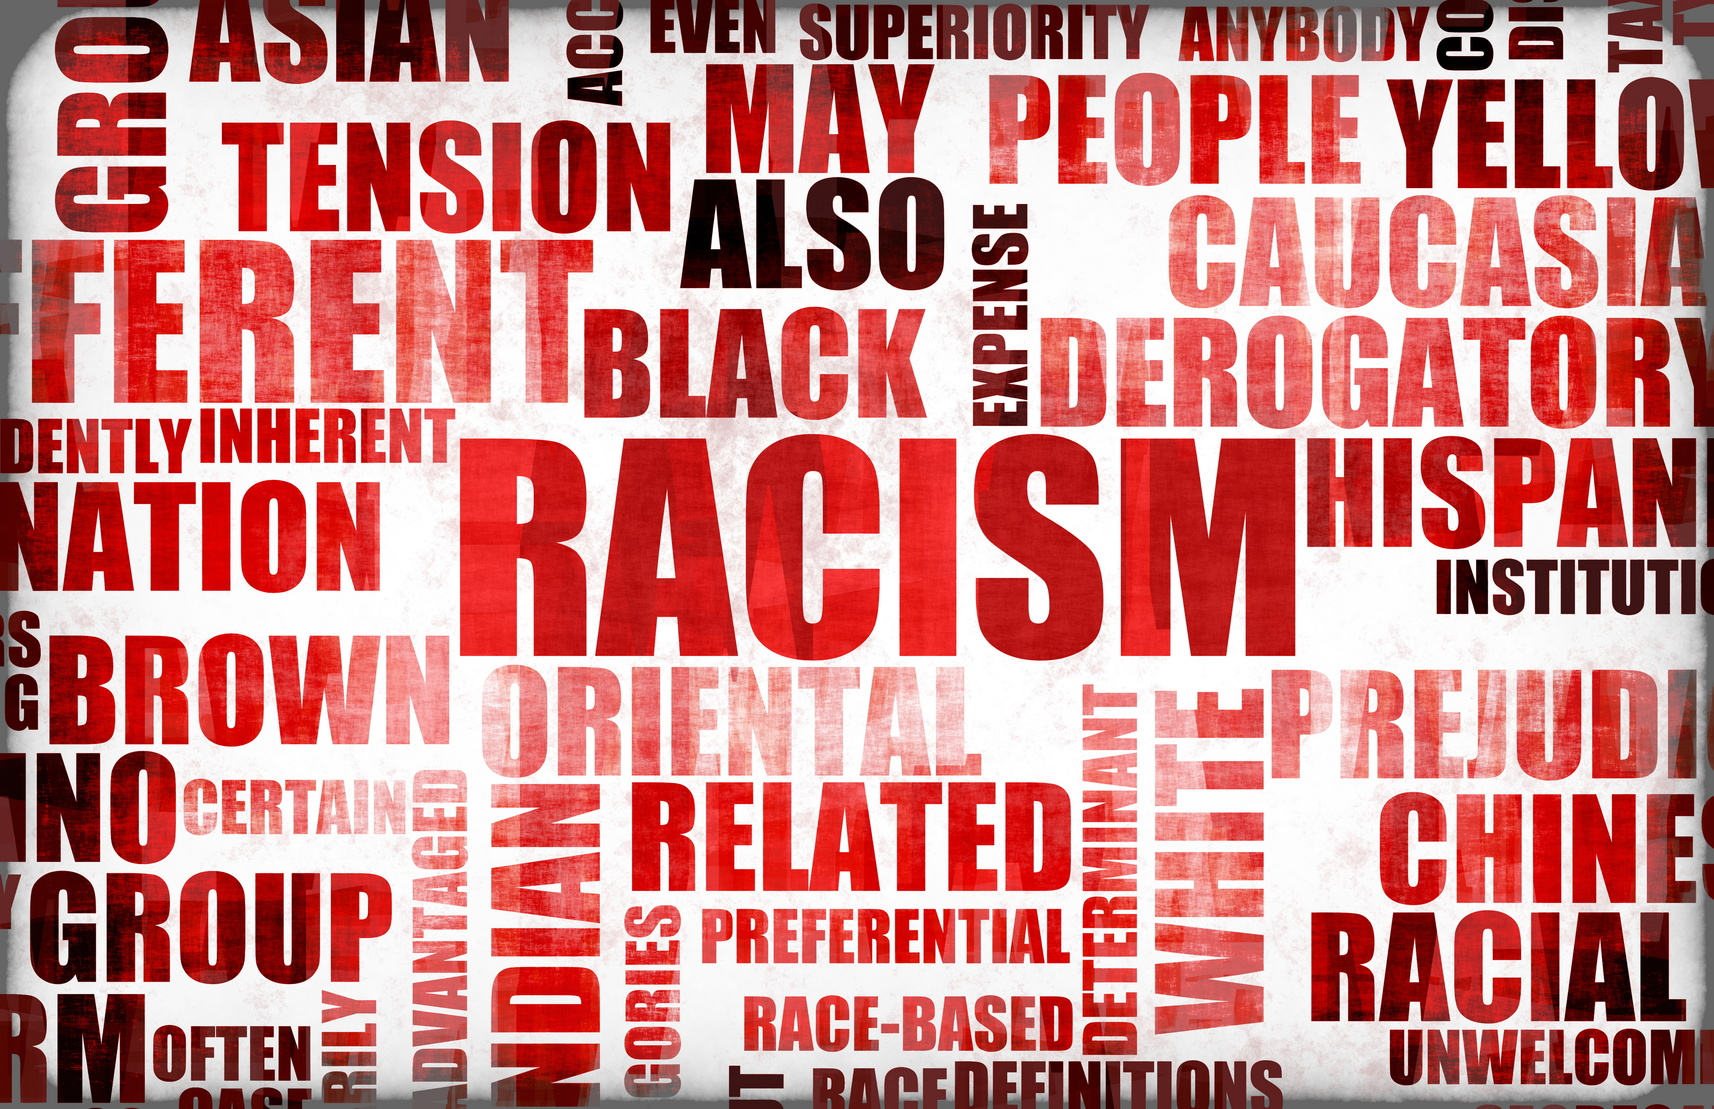 racism and human rights A campaign urging new zealanders to give nothing to racism and refuse to spread intolerance has been launched by some of the country's most well-known people.